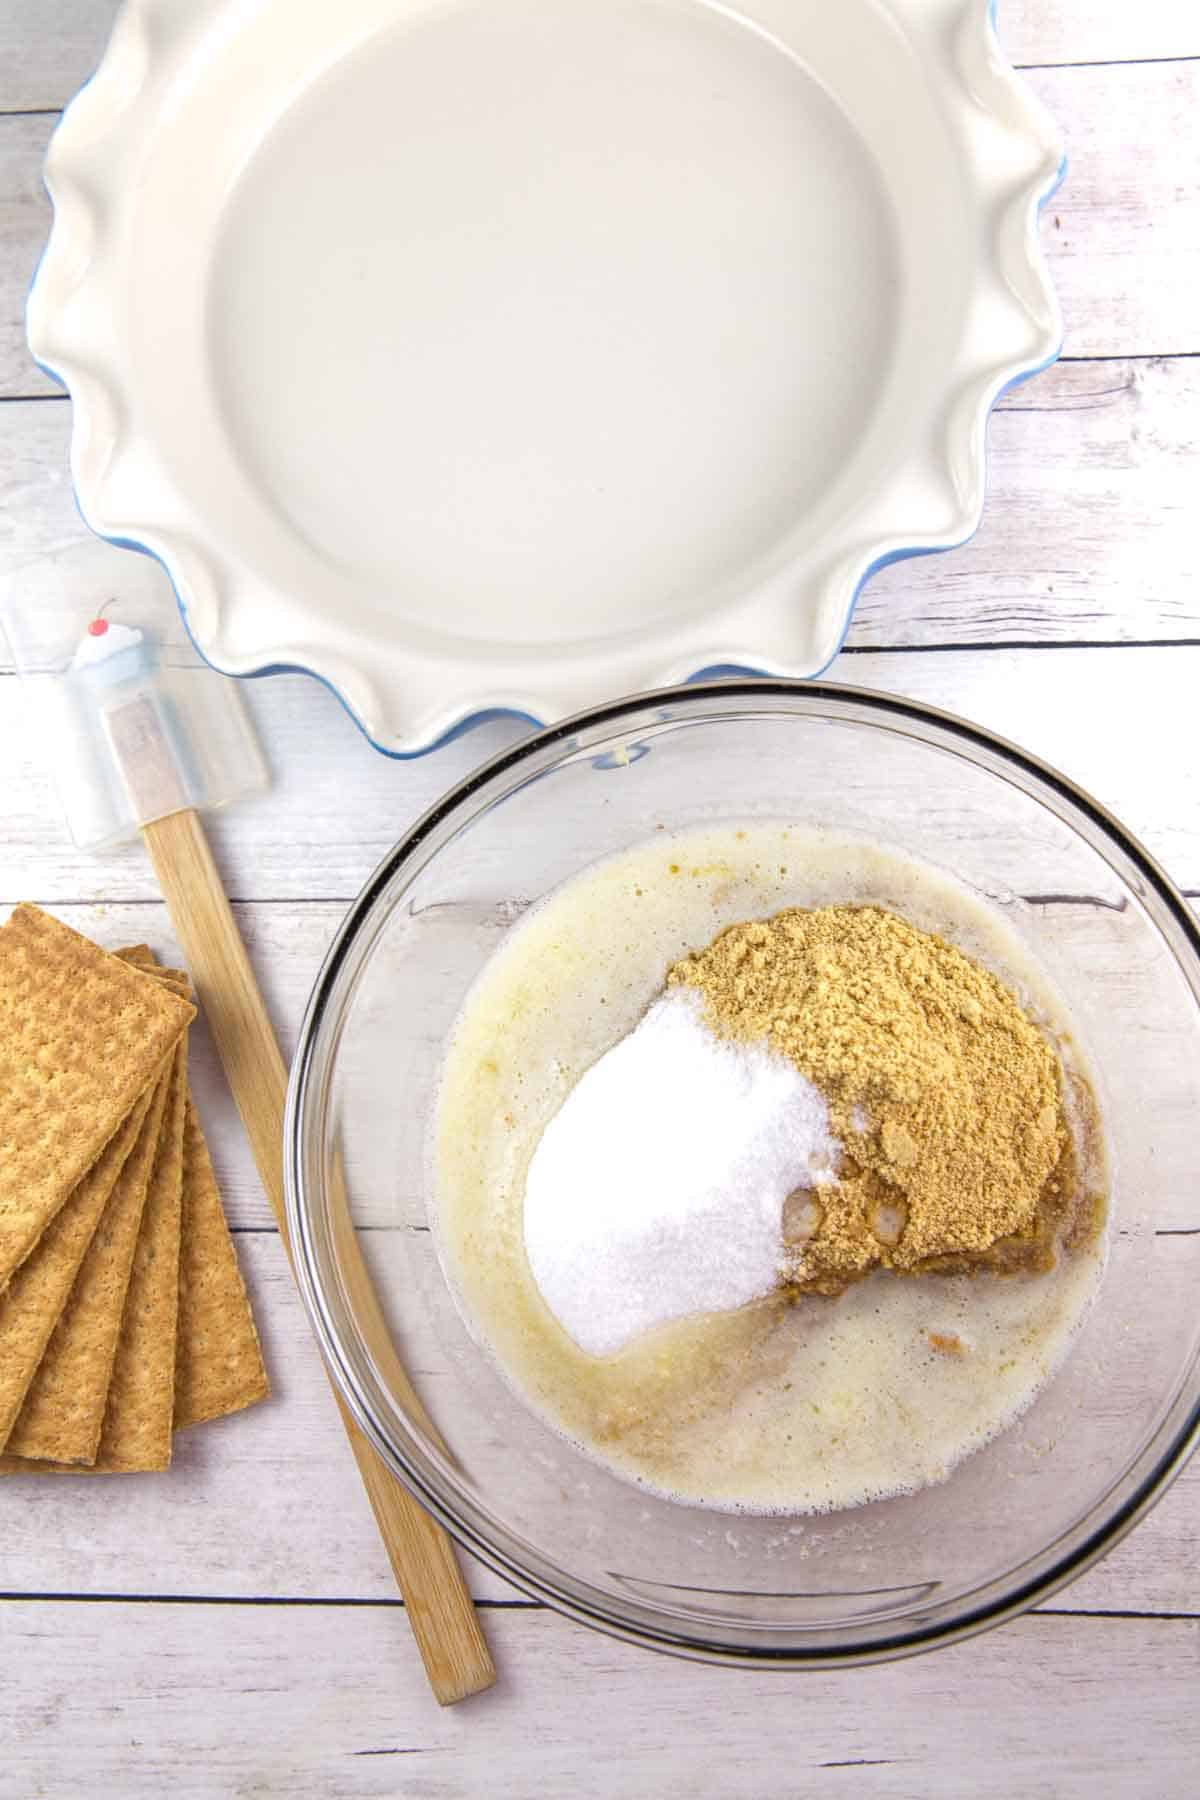 Perfect Graham Cracker Pie Crust: Learn how to make the perfect Graham cracker crust from scratch with these simple tips to keep it from falling apart! {Bunsen Burner Bakery} #pie #piecrust #grahamcrackercrust